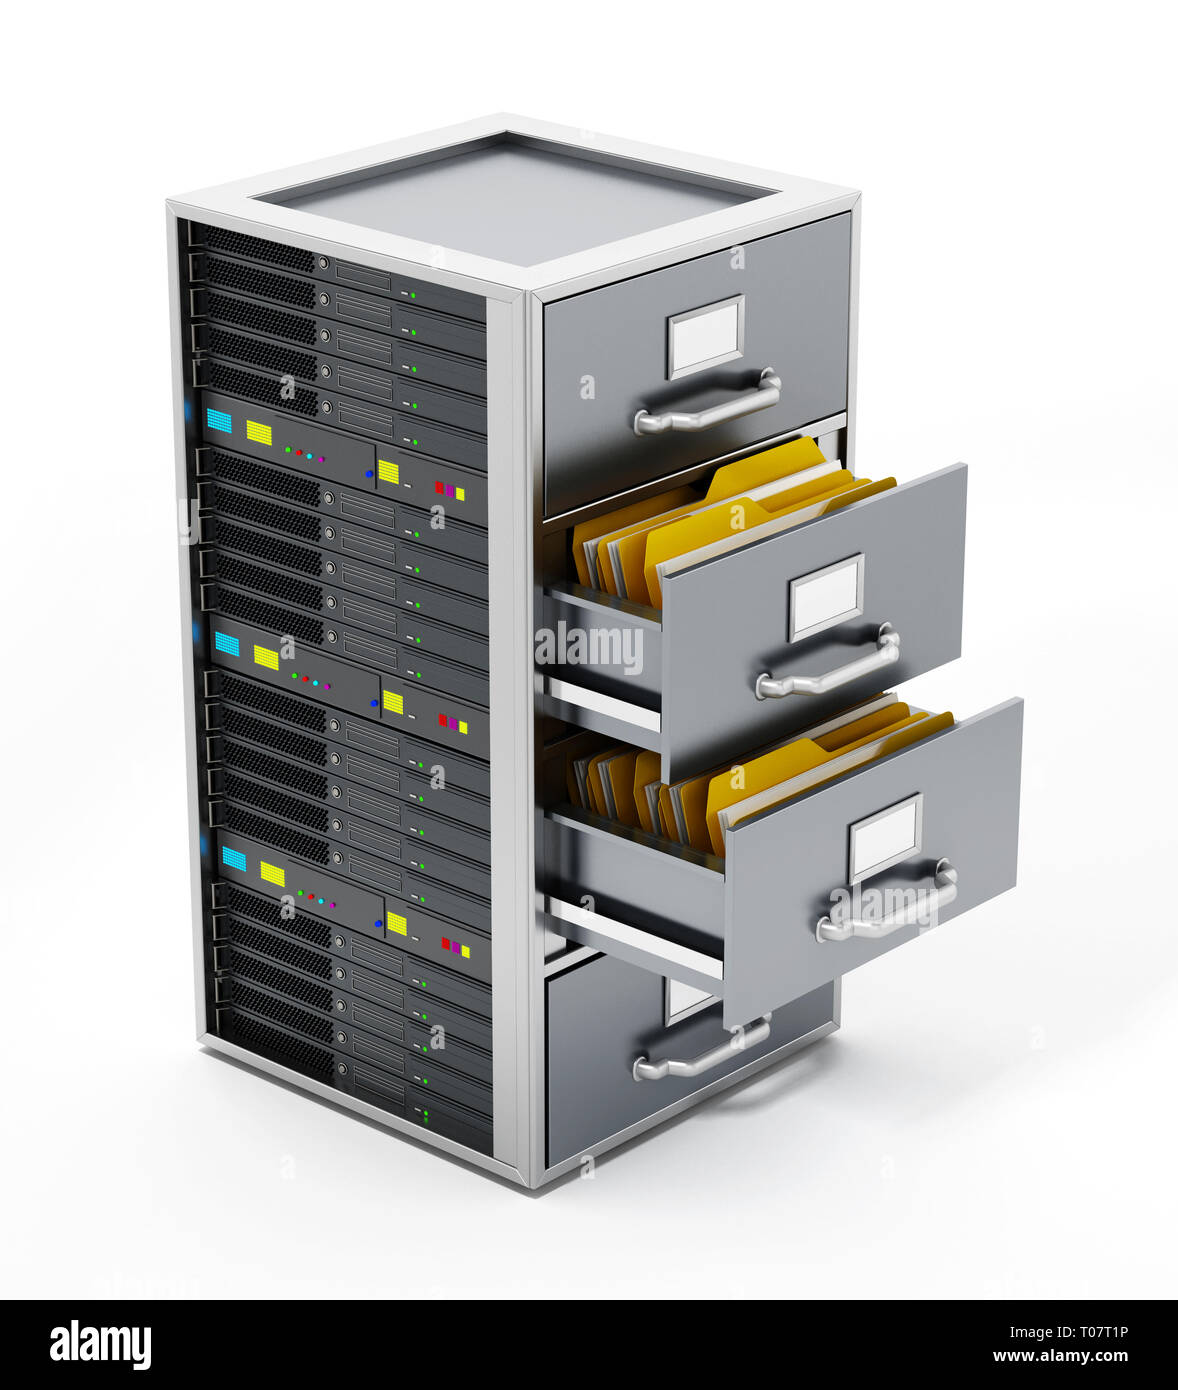 File cabinet combined with network server. 3D illustration. - Stock Image